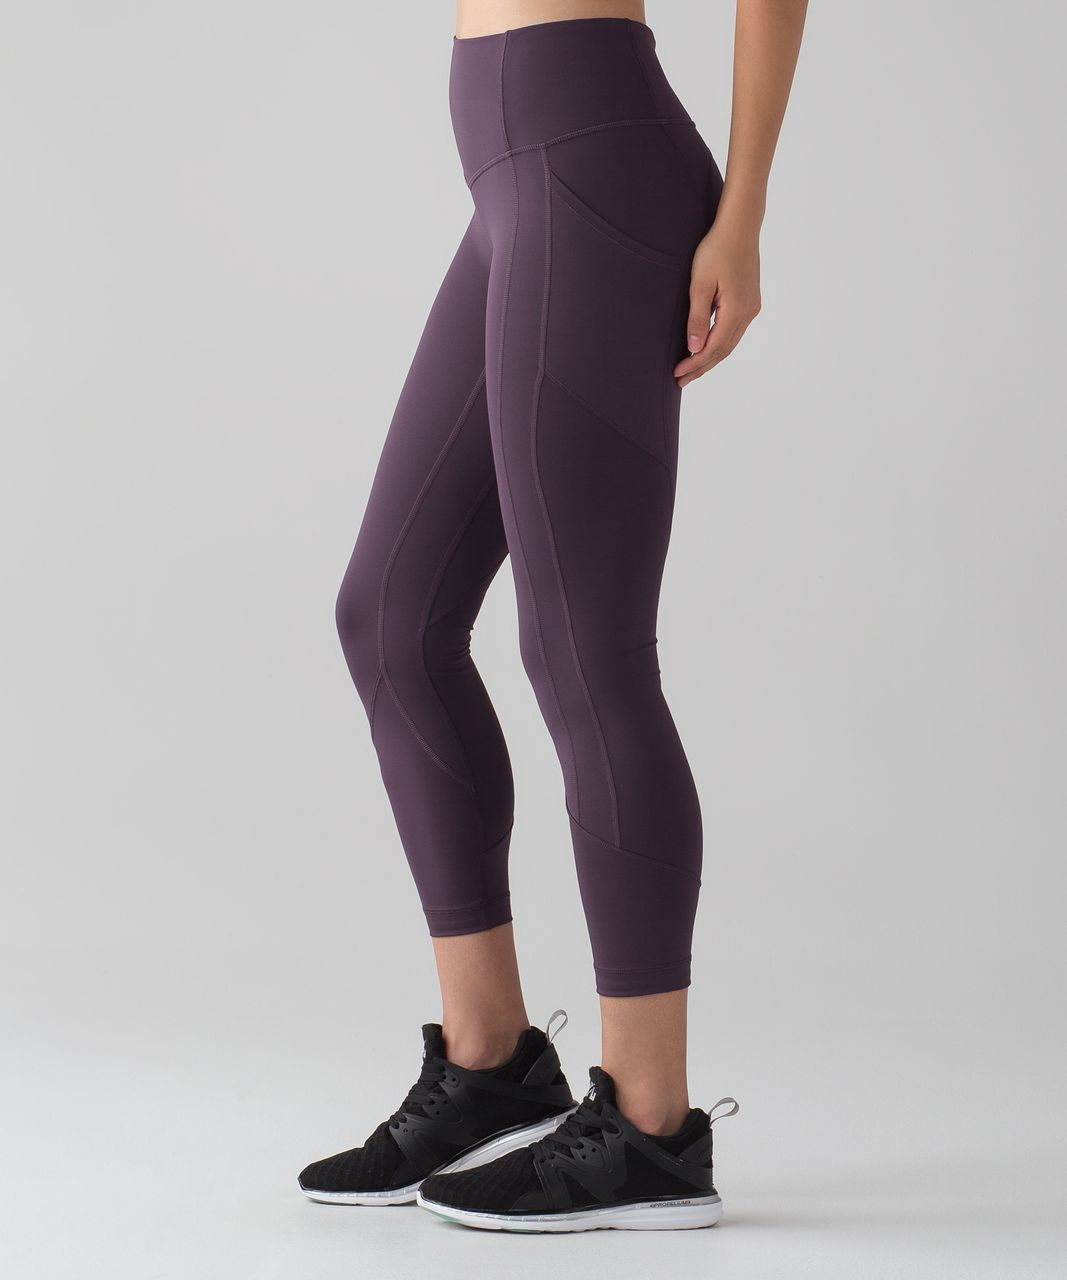 aed2364b4f Lululemon All The Right Places Crop II (23